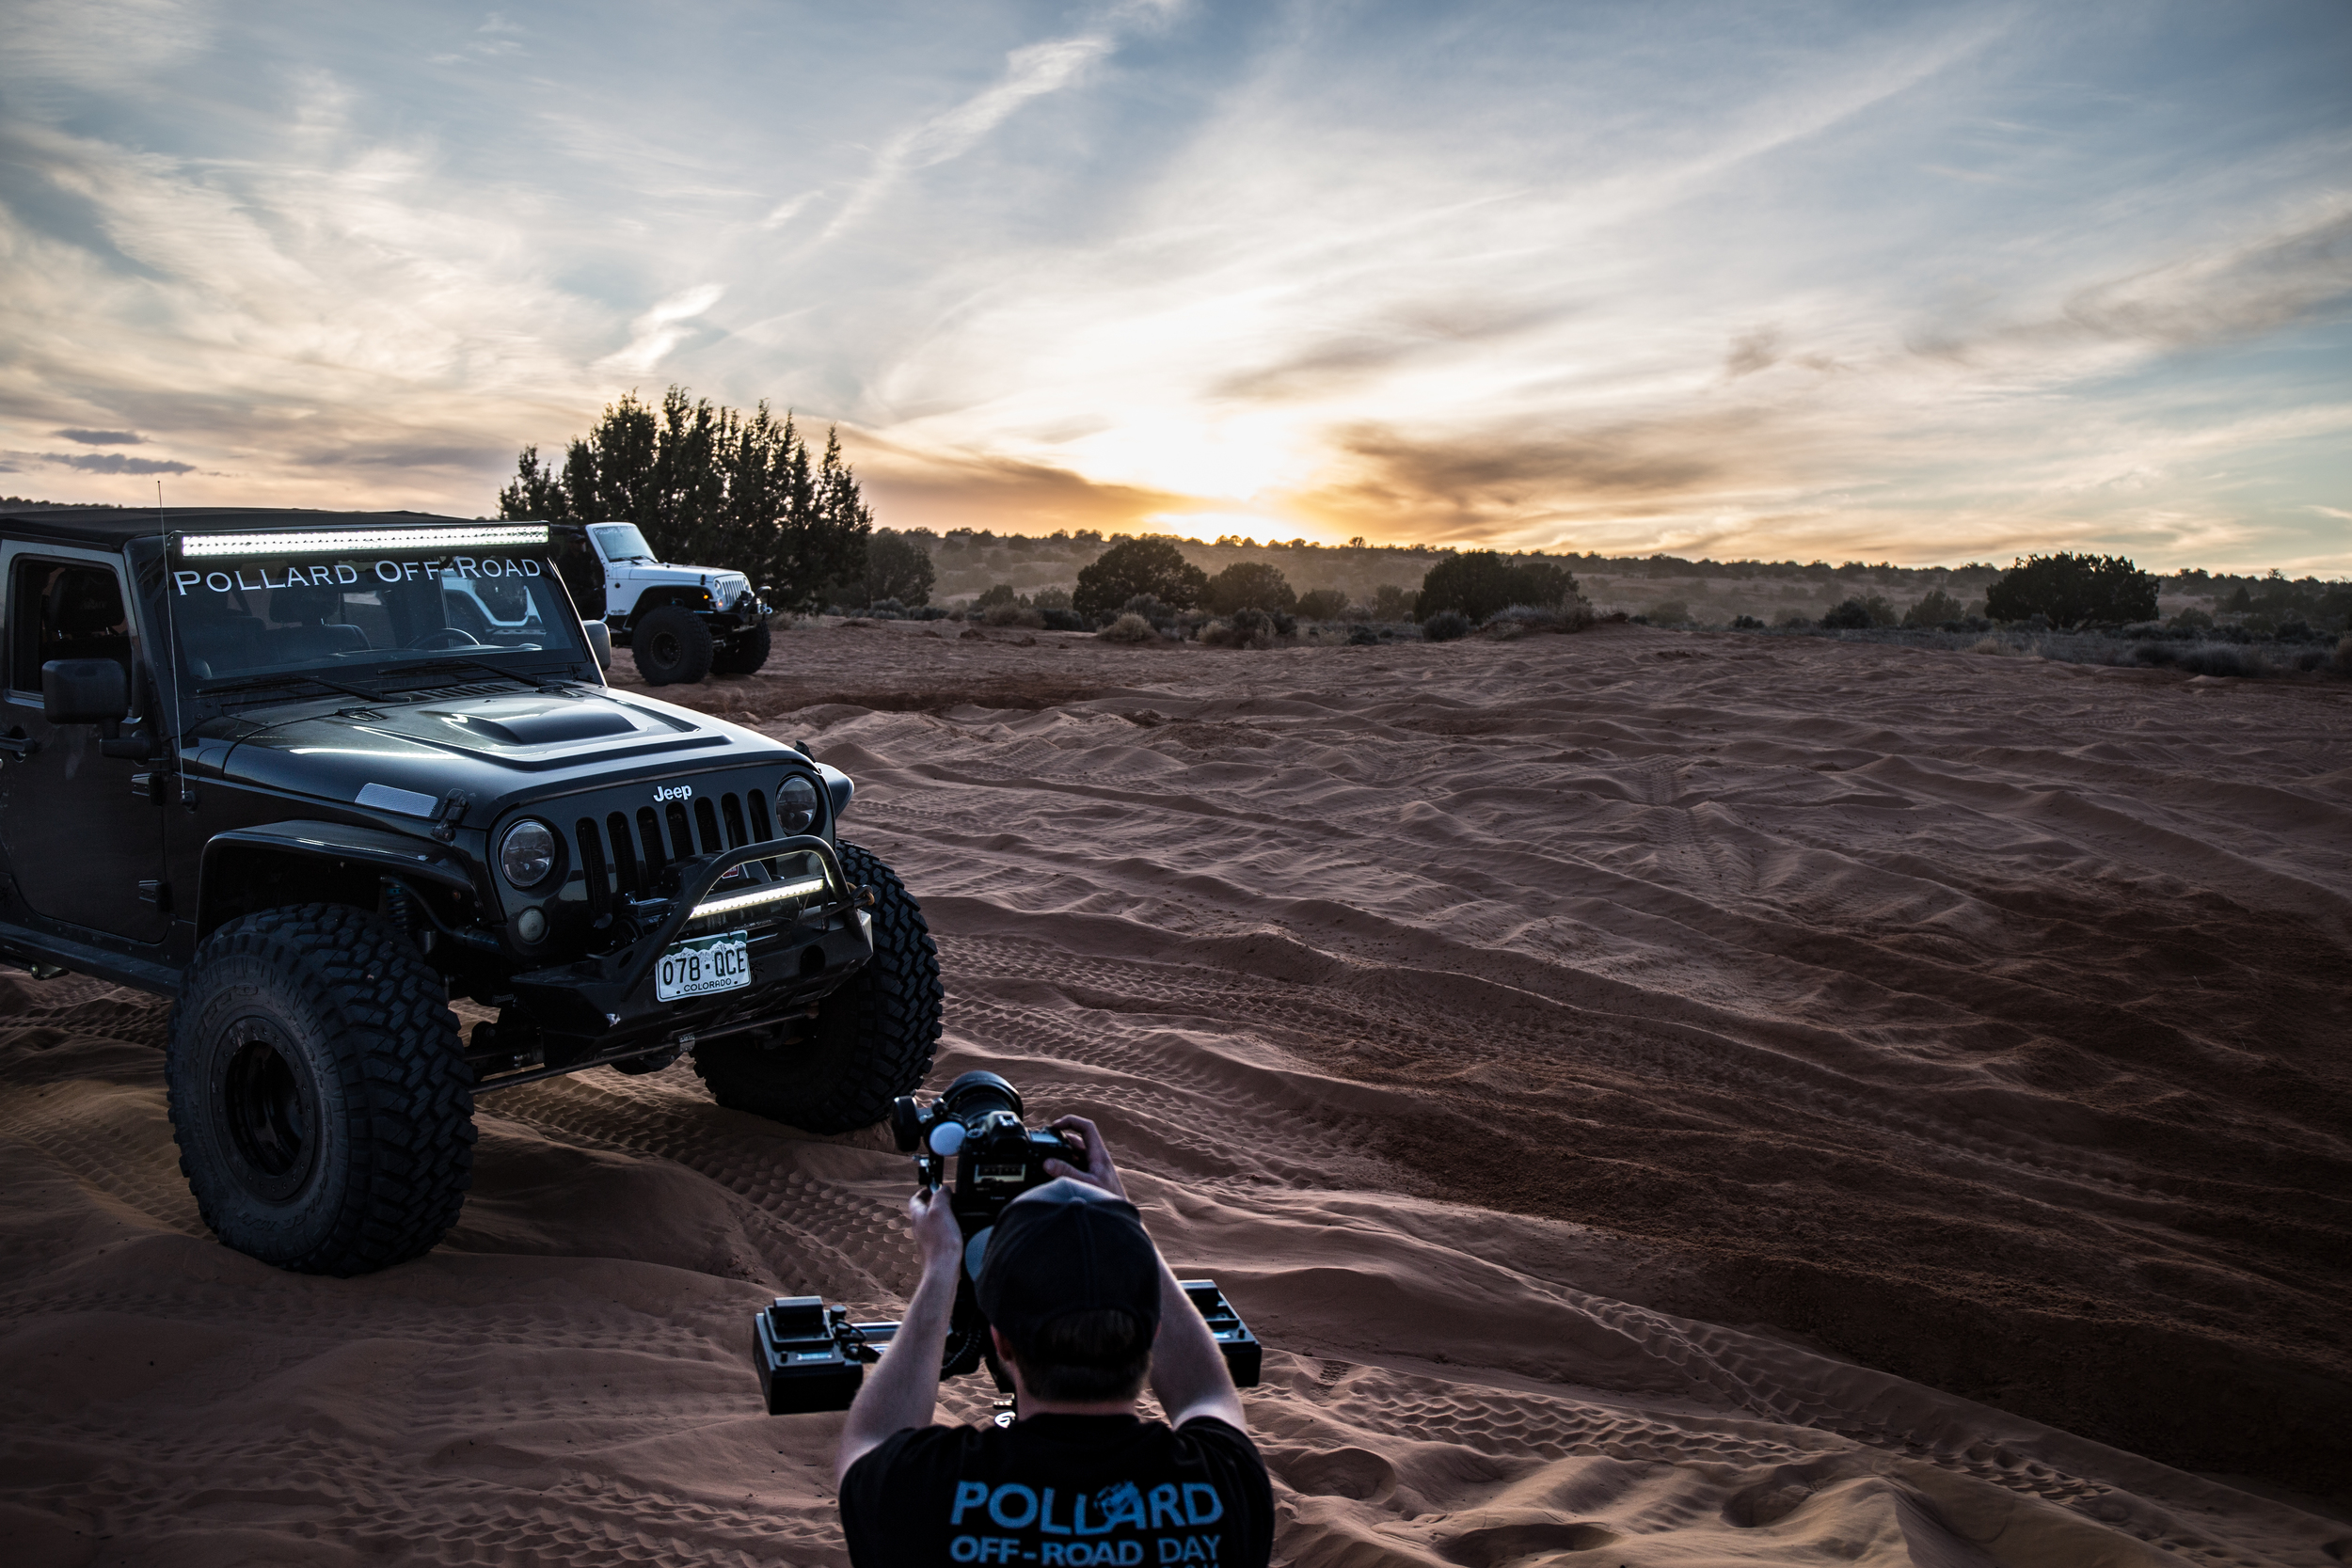 President and Executive Producer, Blake Saffel, hard at work in Moab, UT